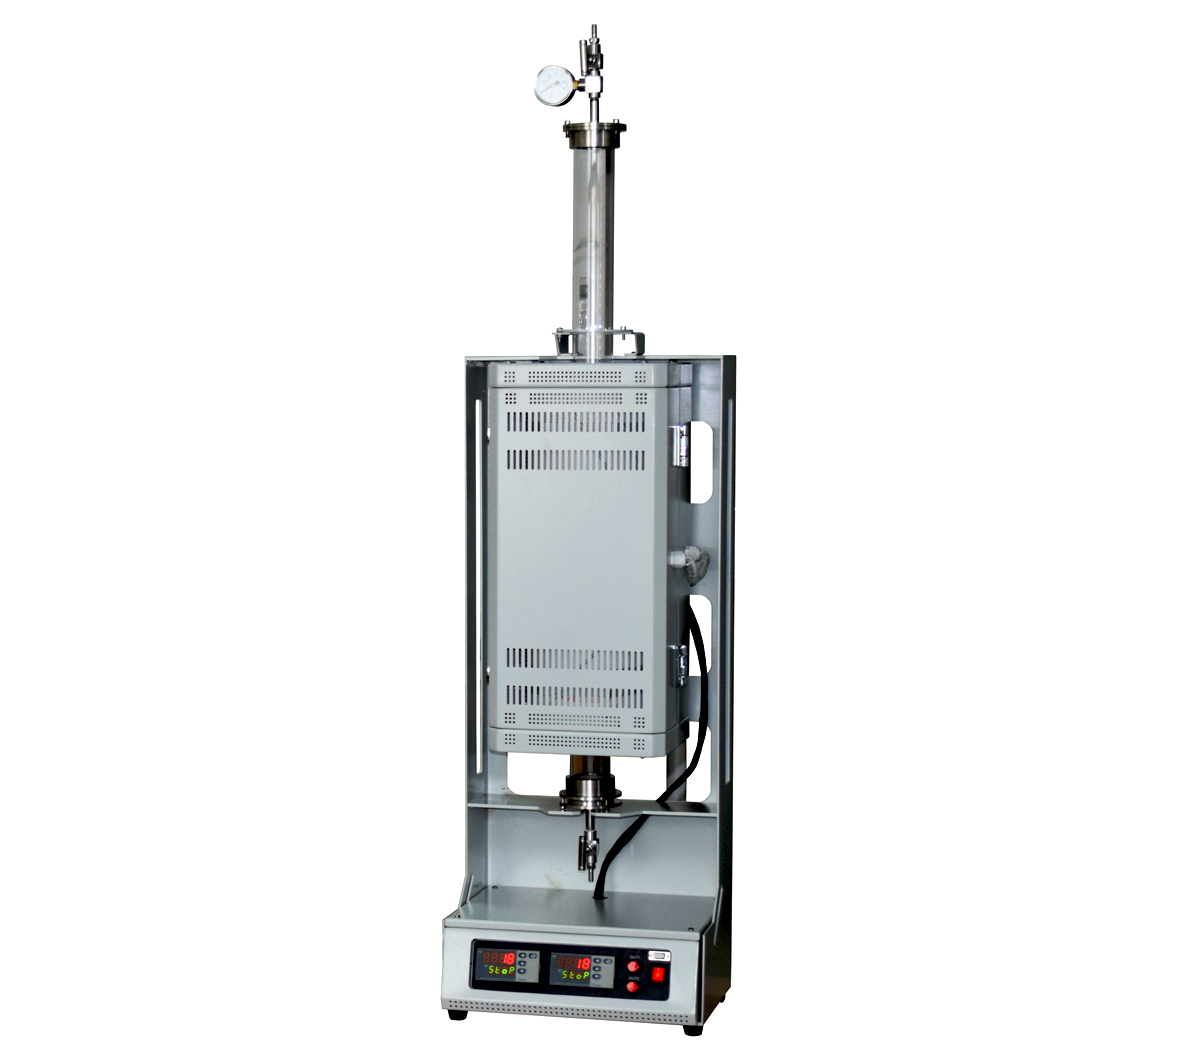 """Compact 1200℃ two heating zone vertical tube furnace with 1"""" quartz chamber CY-V1200-25IIC"""